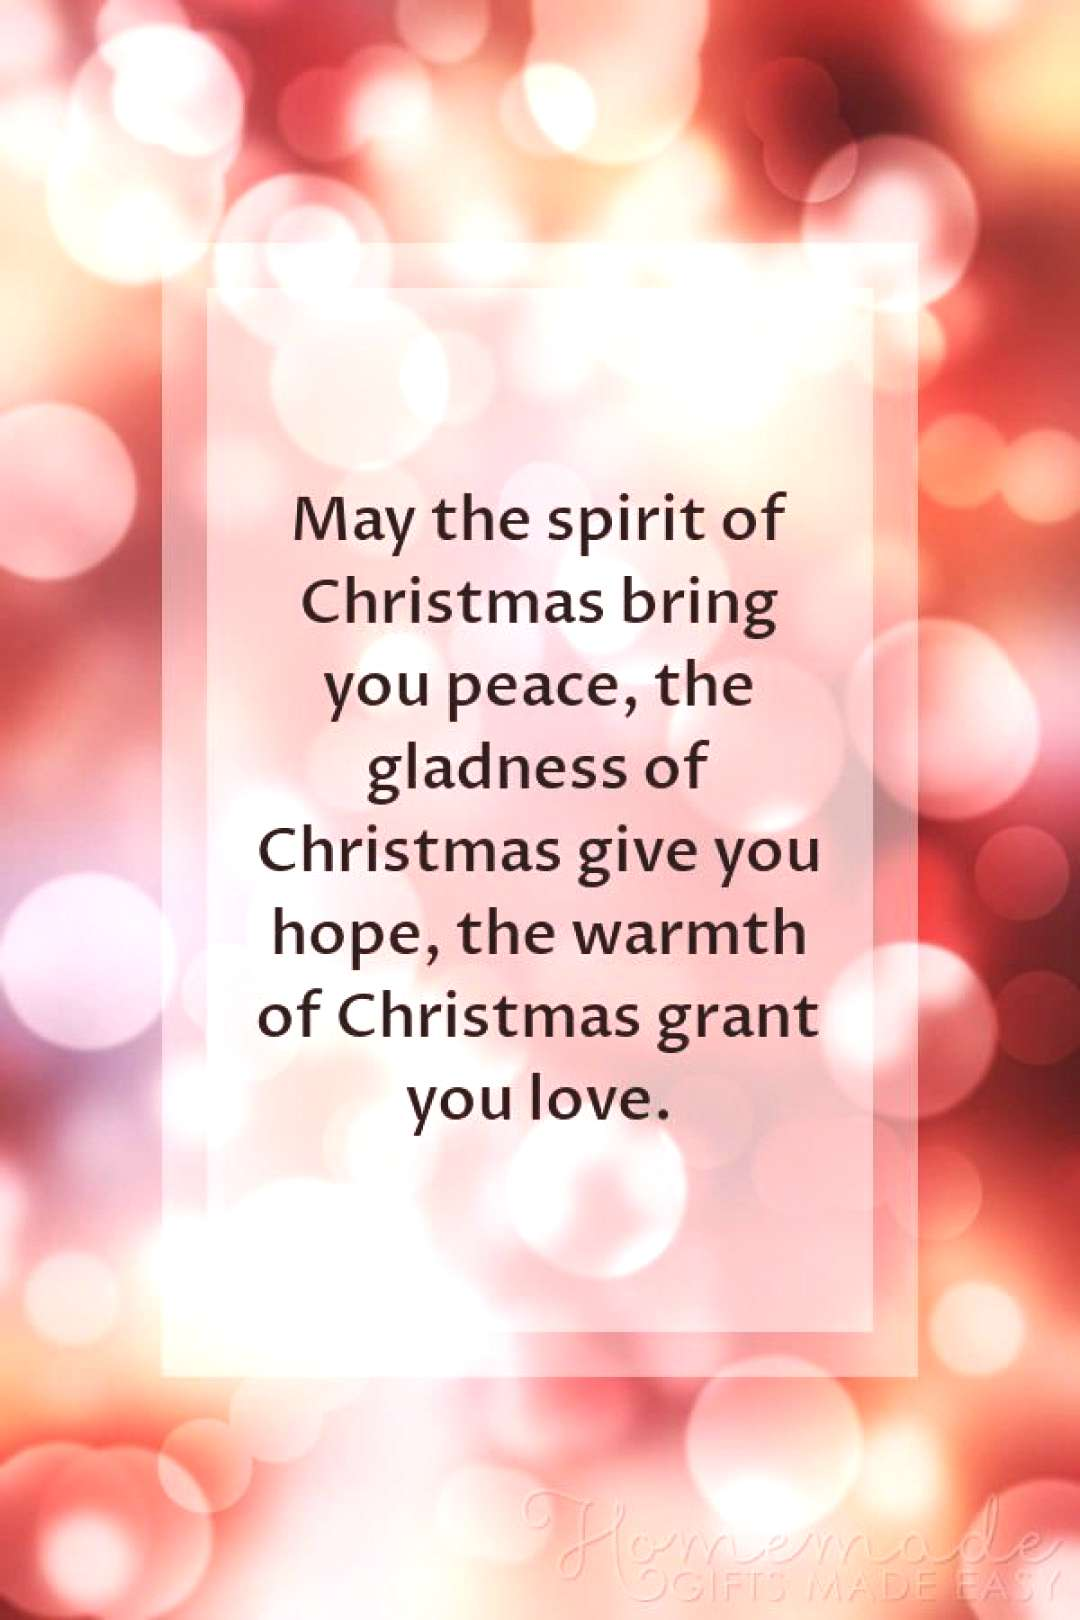 Christmas Quotes | May the spirit of Christmas bring you peace, the gladness of Christmas give you